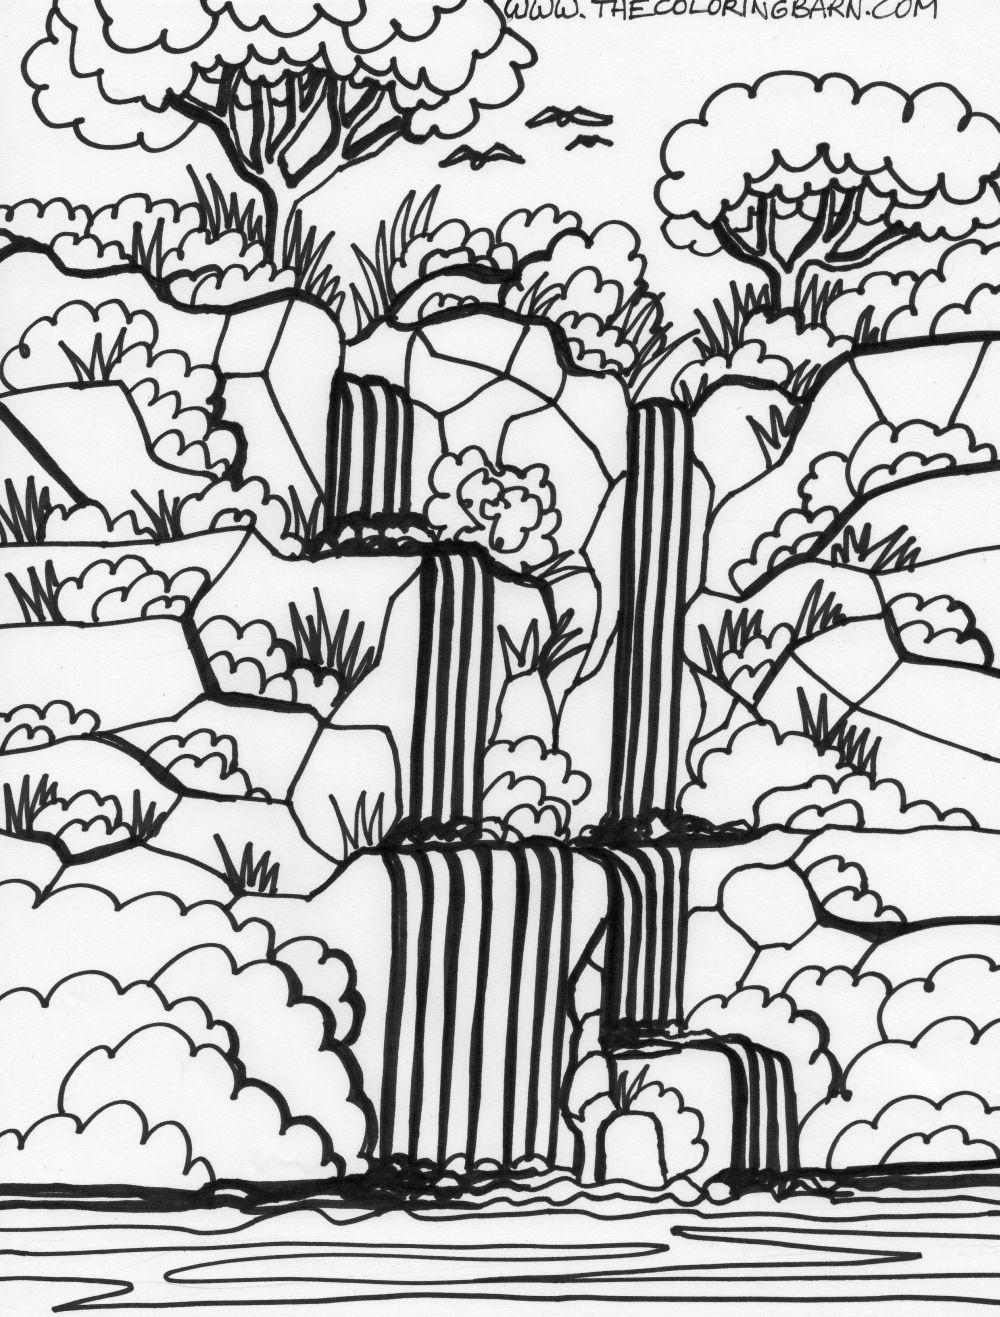 free printable jungle coloring pages jungle book coloring pages top 100 images free printable coloring pages jungle printable free